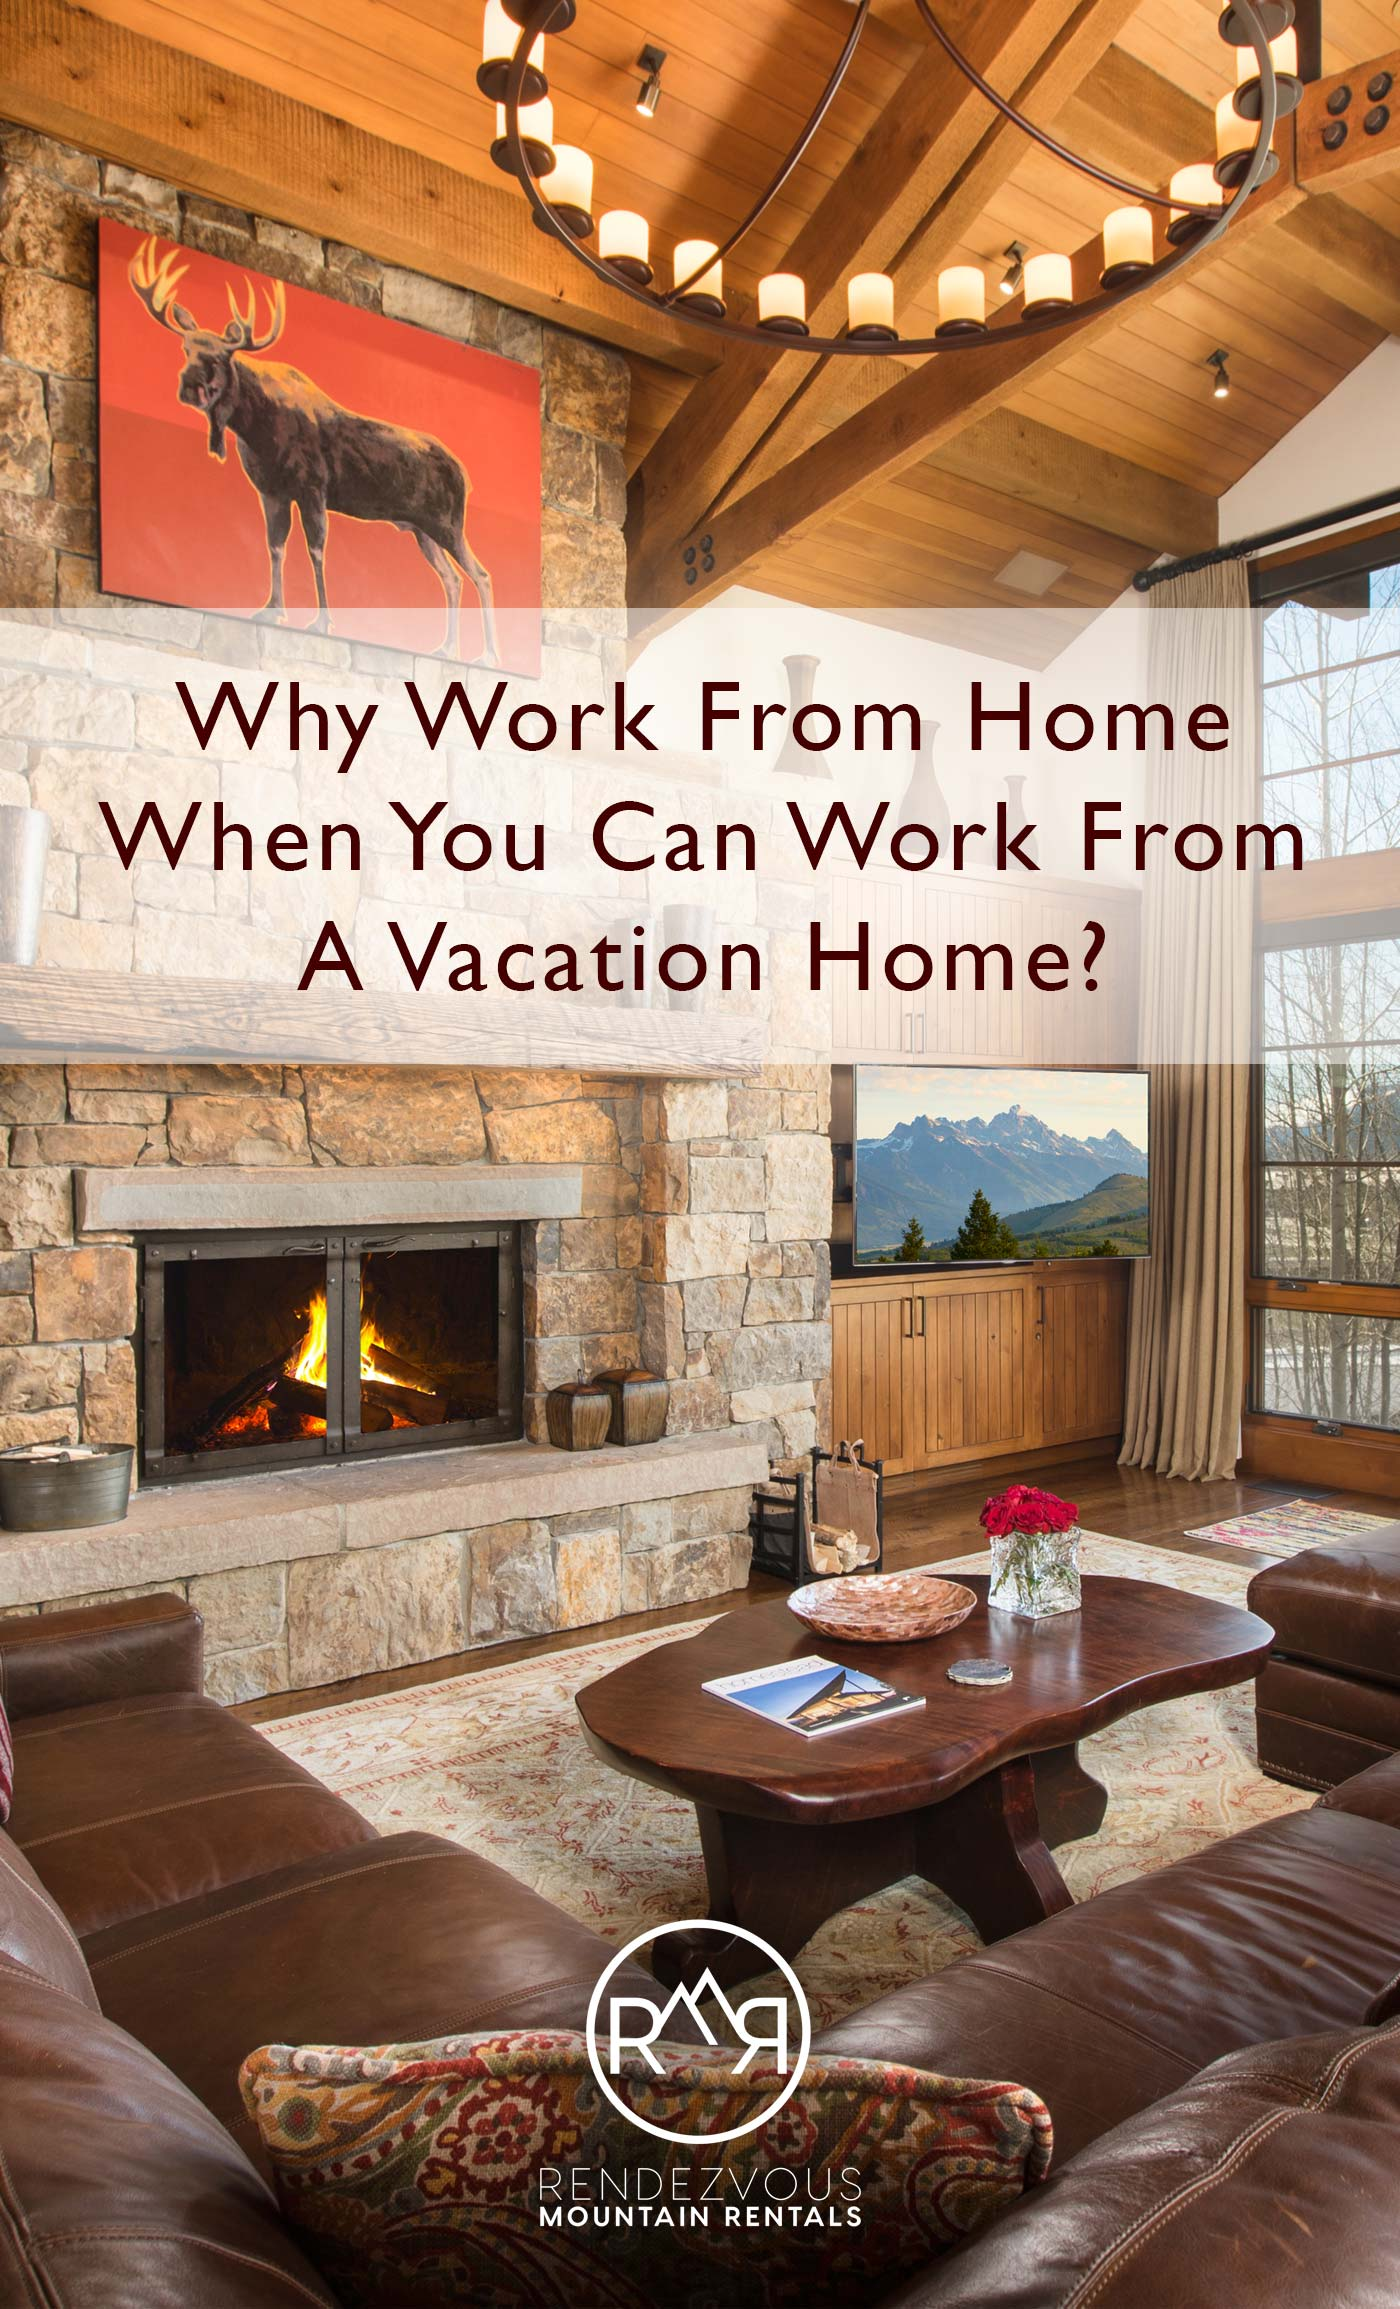 Why Work From Home When You Could Work From A Vacation Home?